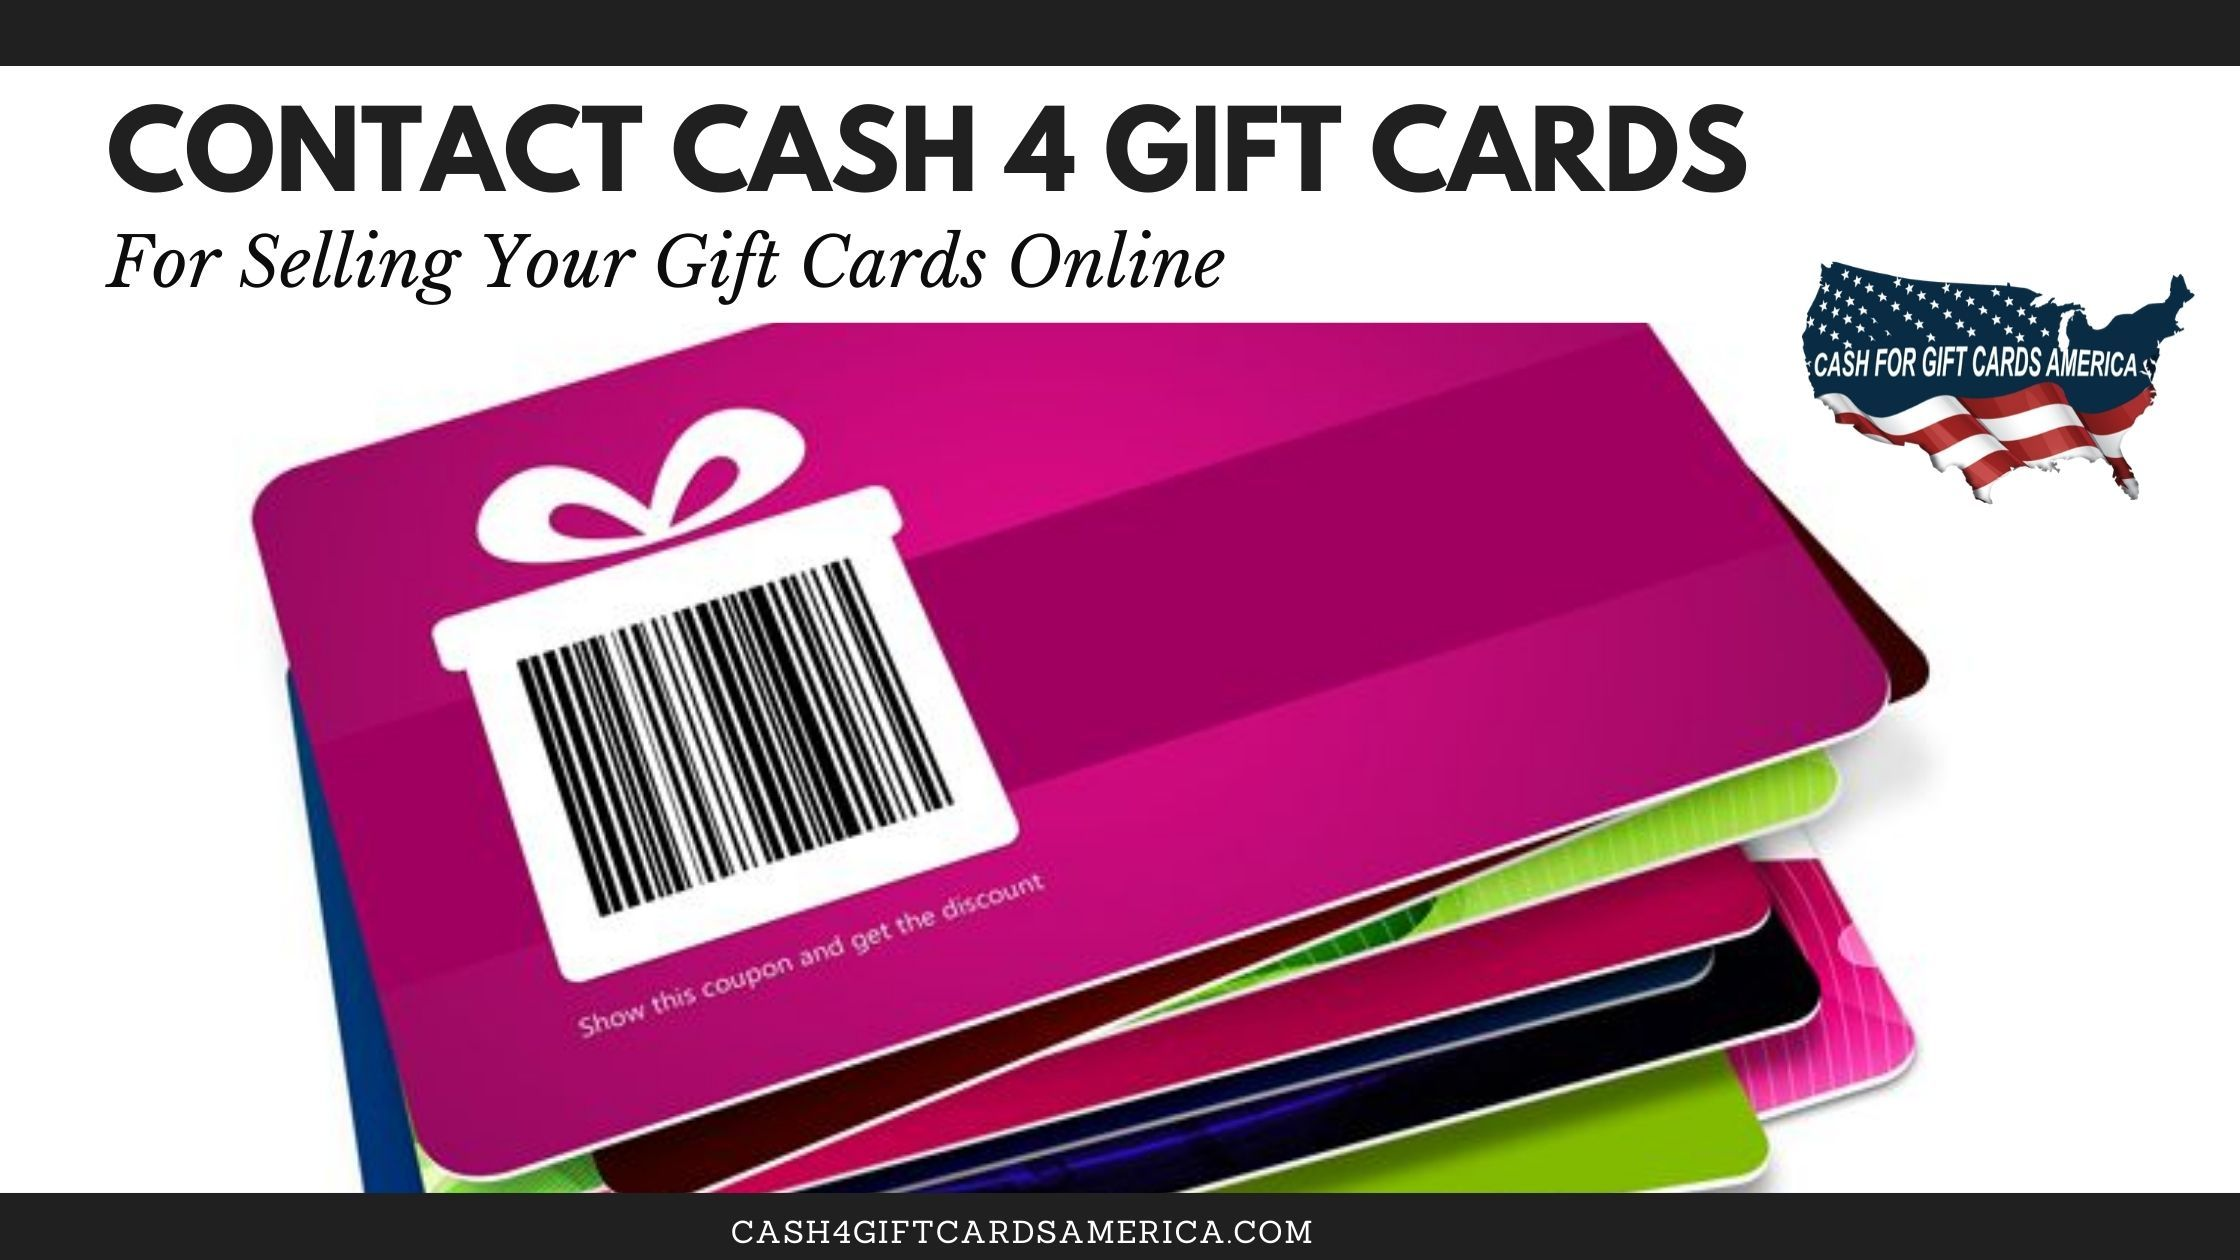 Contact Cash 4gift Cards For Selling Your Gift Cards Online Sell Gift Cards Cash Gift Card Gift Card